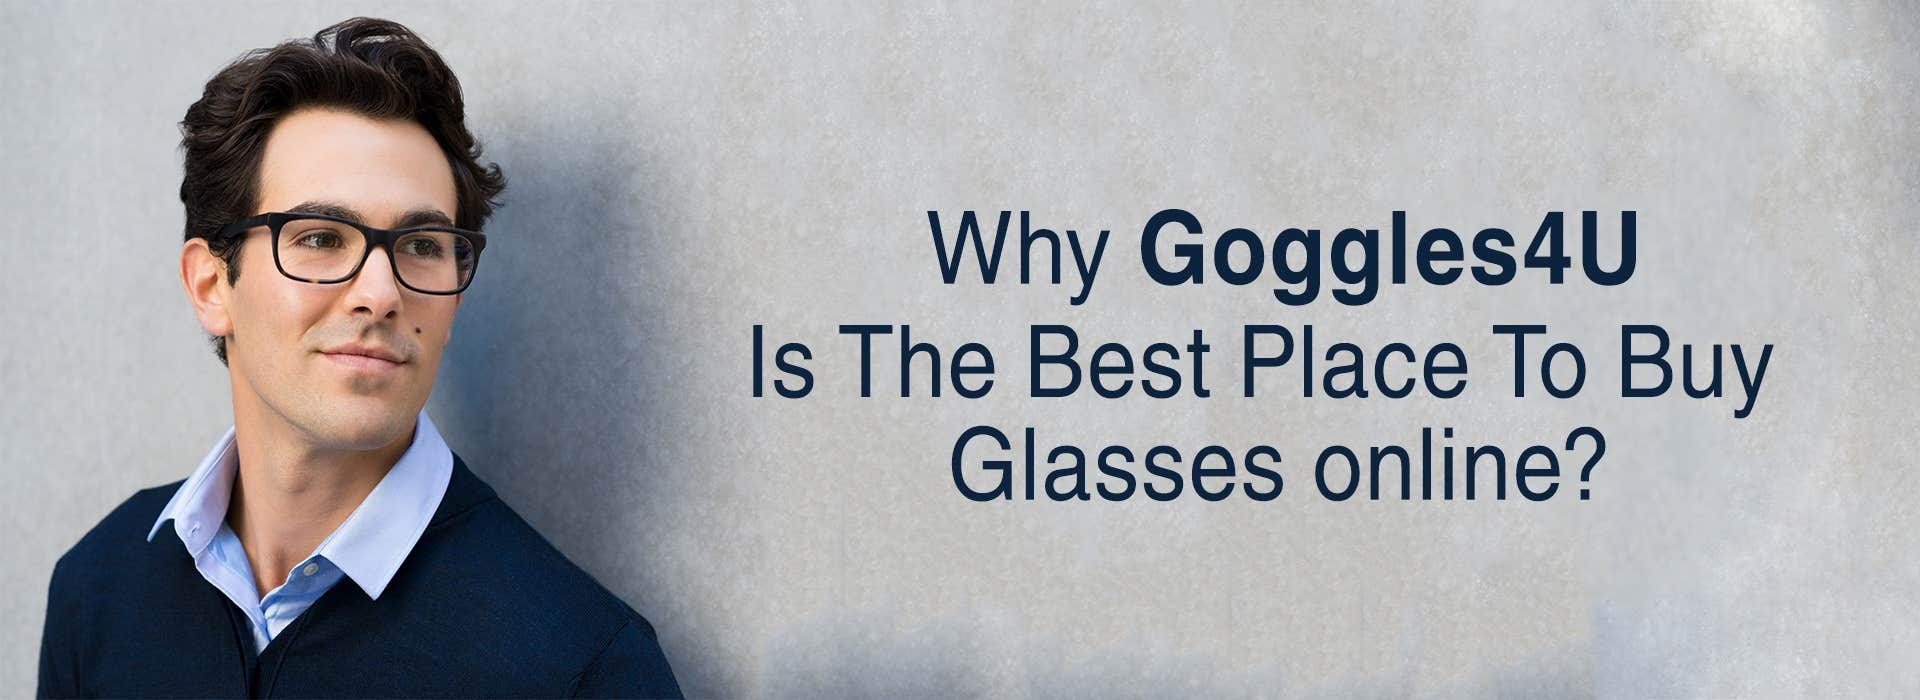 Why Goggles4U Is The Best Place To Buy Glasses Online?